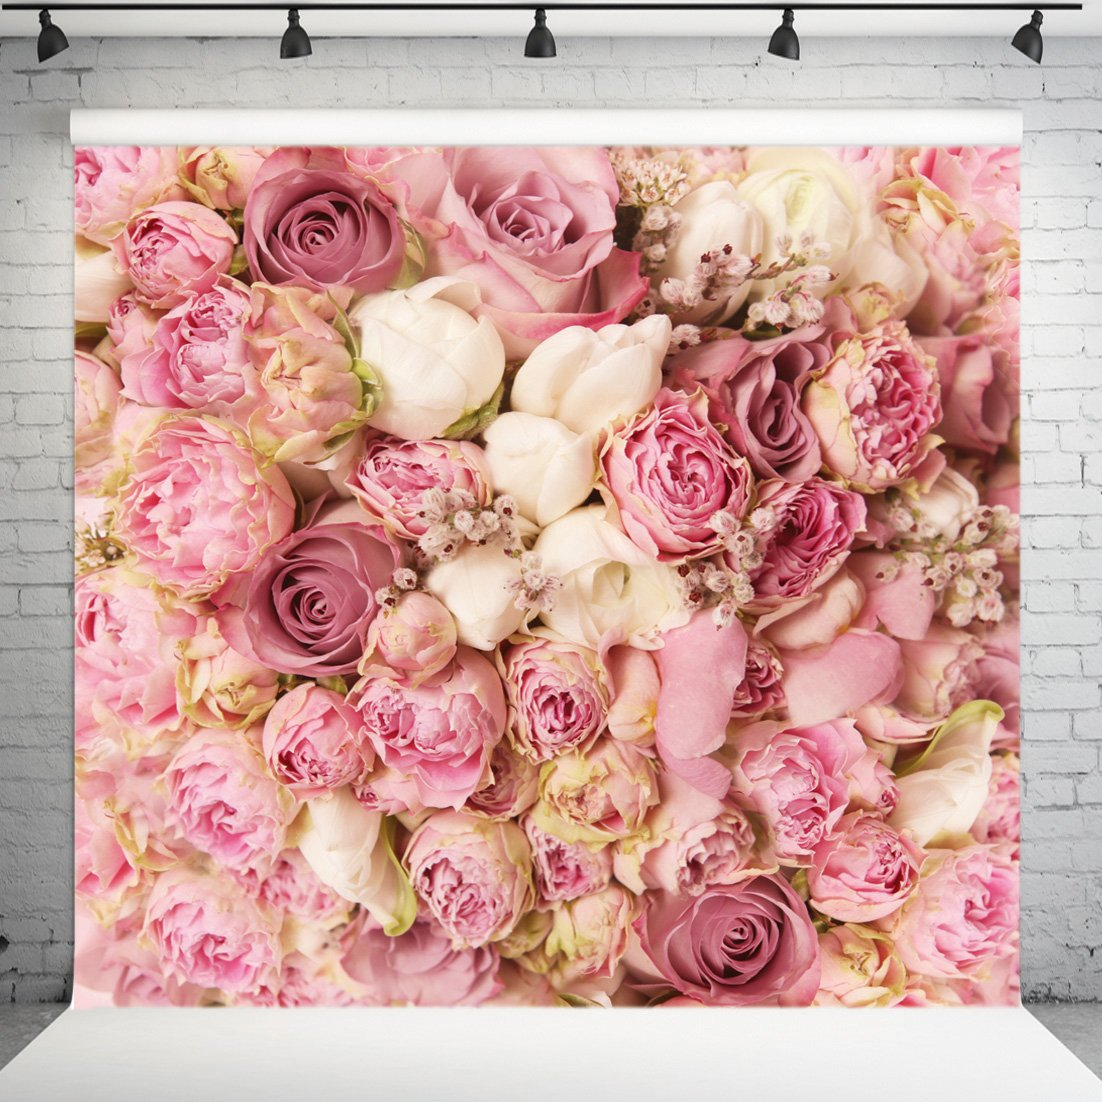 WOLADA 8x8ft Rose Floral Wall Wedding Photography Backdrop Art Fabric studio Pink Flowers Wall Photo Backdrop 9604 by WOLADA